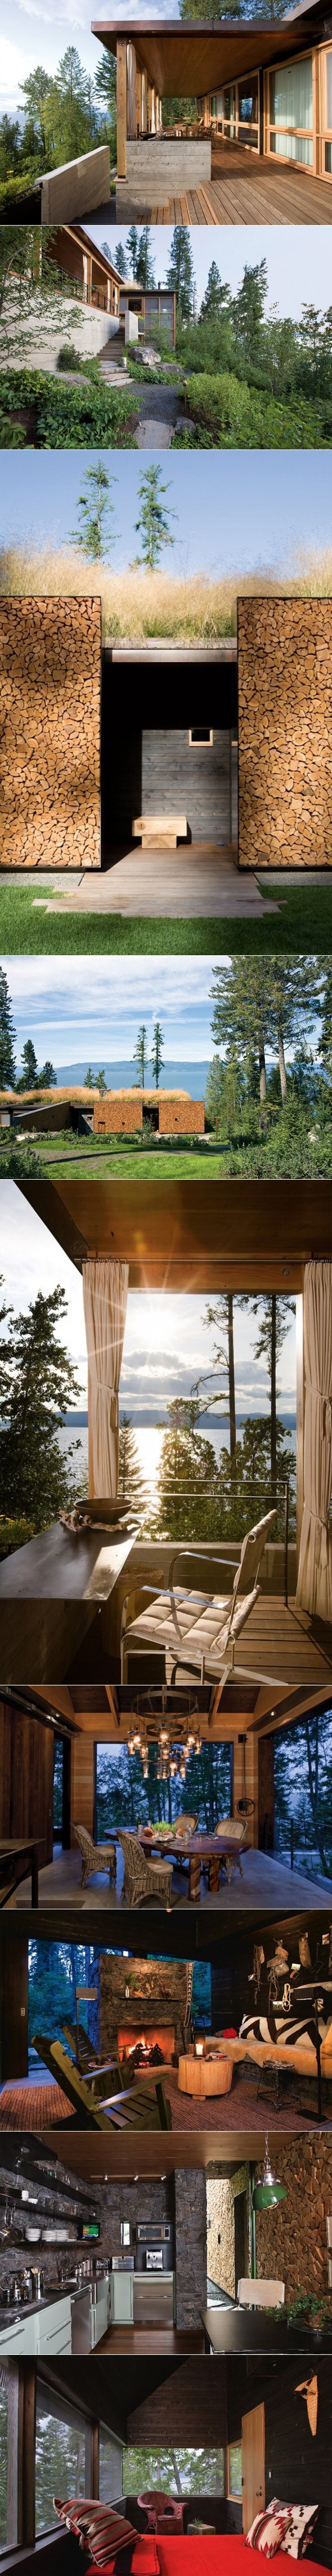 ARCHITECTURE >>> Stone Creek Camp par Andersson Wise